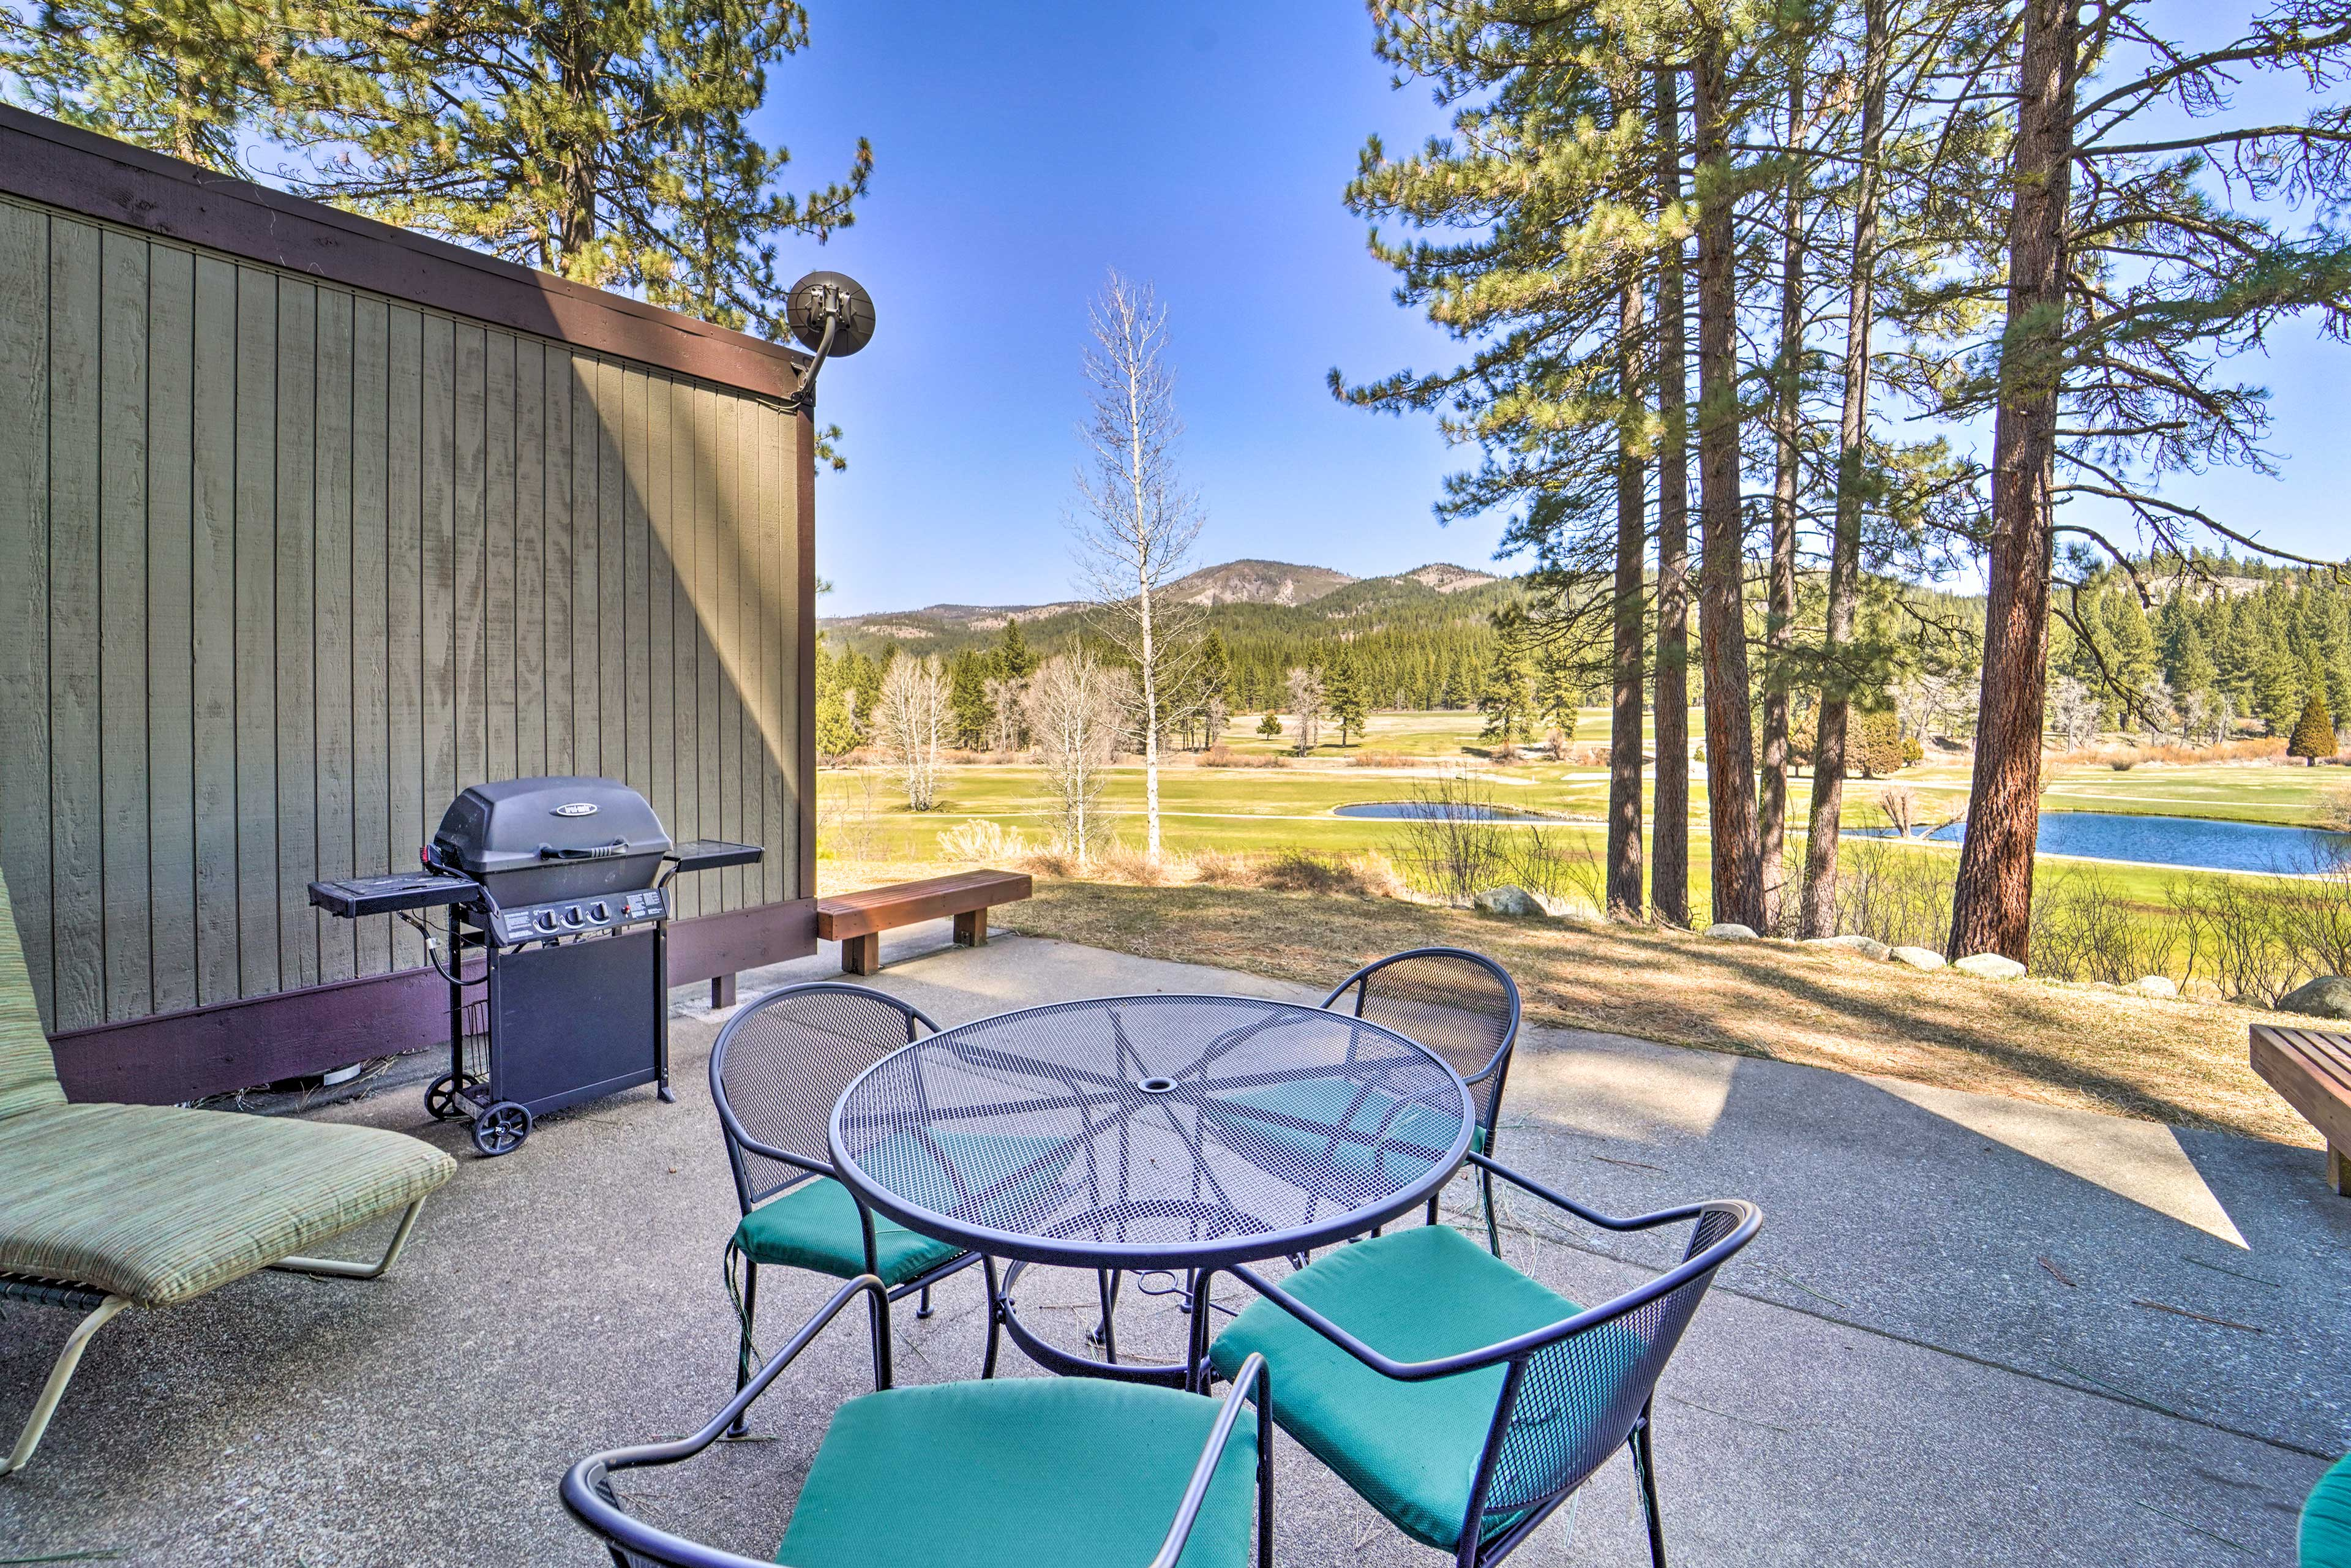 Graeagle Vacation Rental   4BR   2.5BA   1,500 Sq Ft   1 Story Home